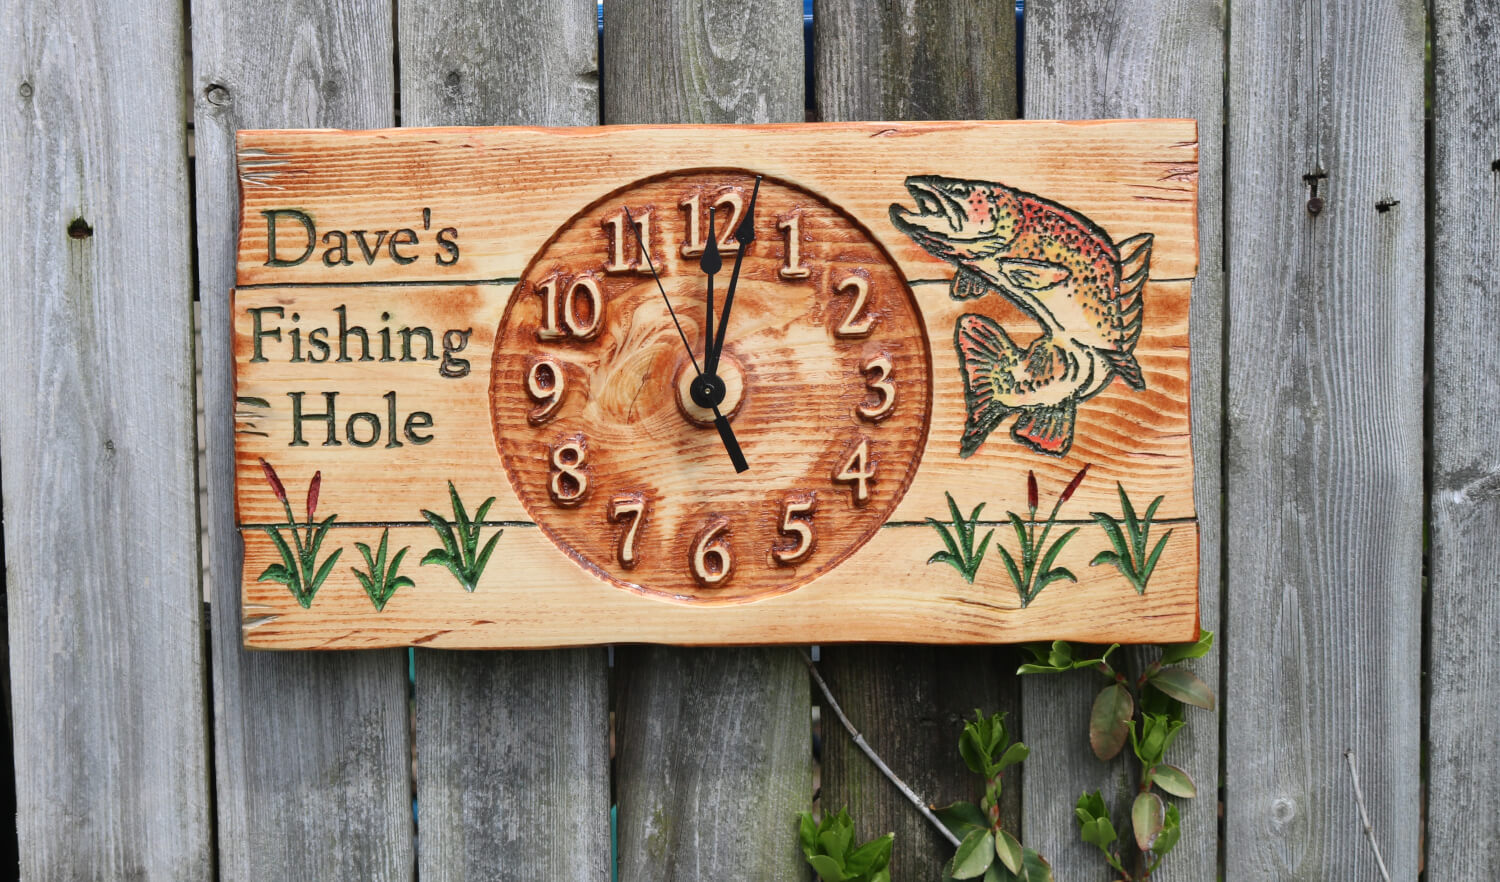 Trout Fishing Hole Personalized Wall Wood Clock with Your Name